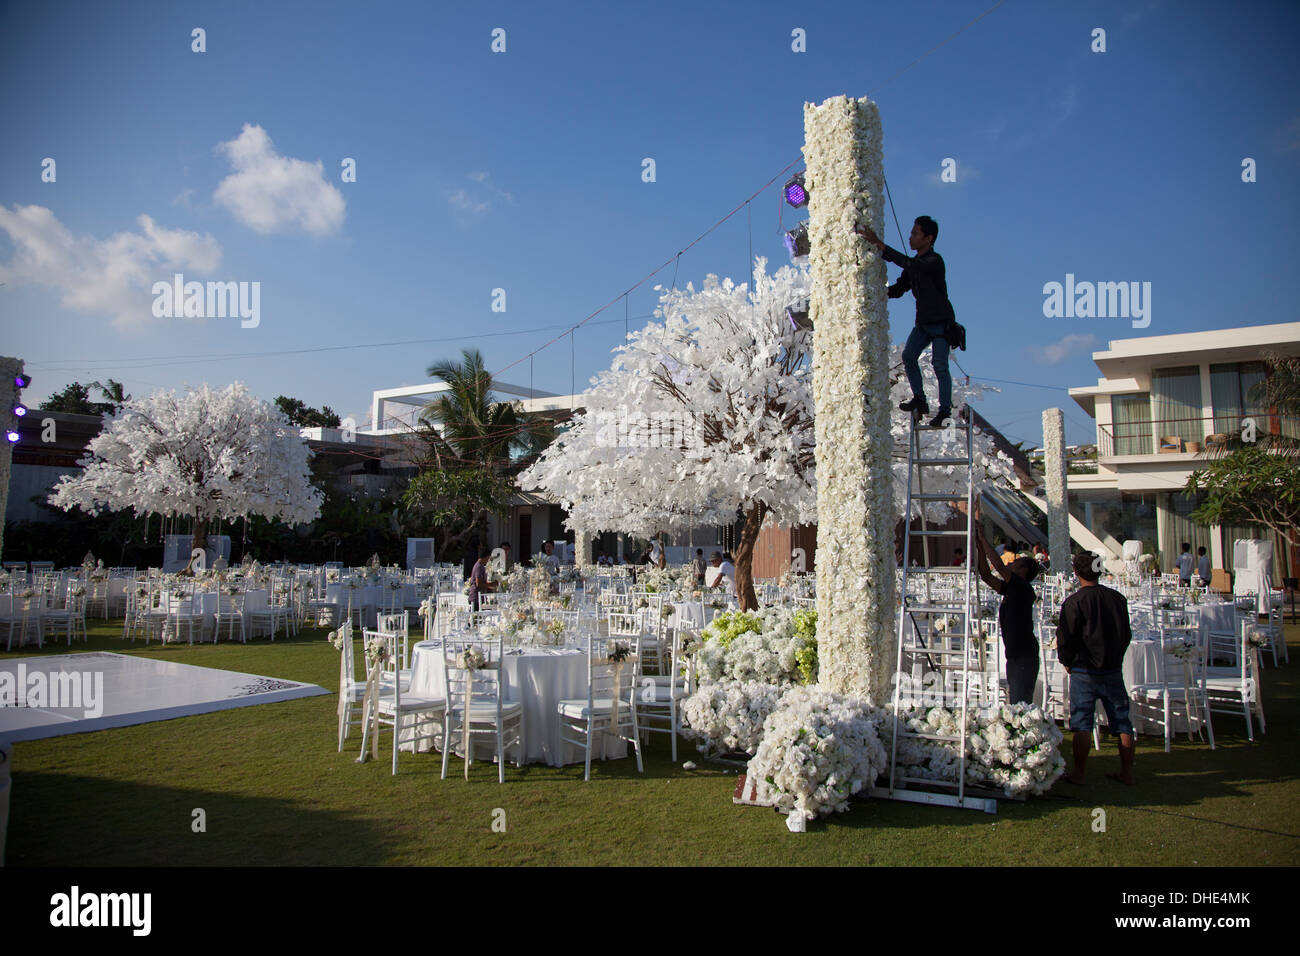 Wedding decorations bali indonesia gallery wedding dress wedding decoration di bali image collections wedding dress bali wedding decor choice image wedding decoration ideas junglespirit Images